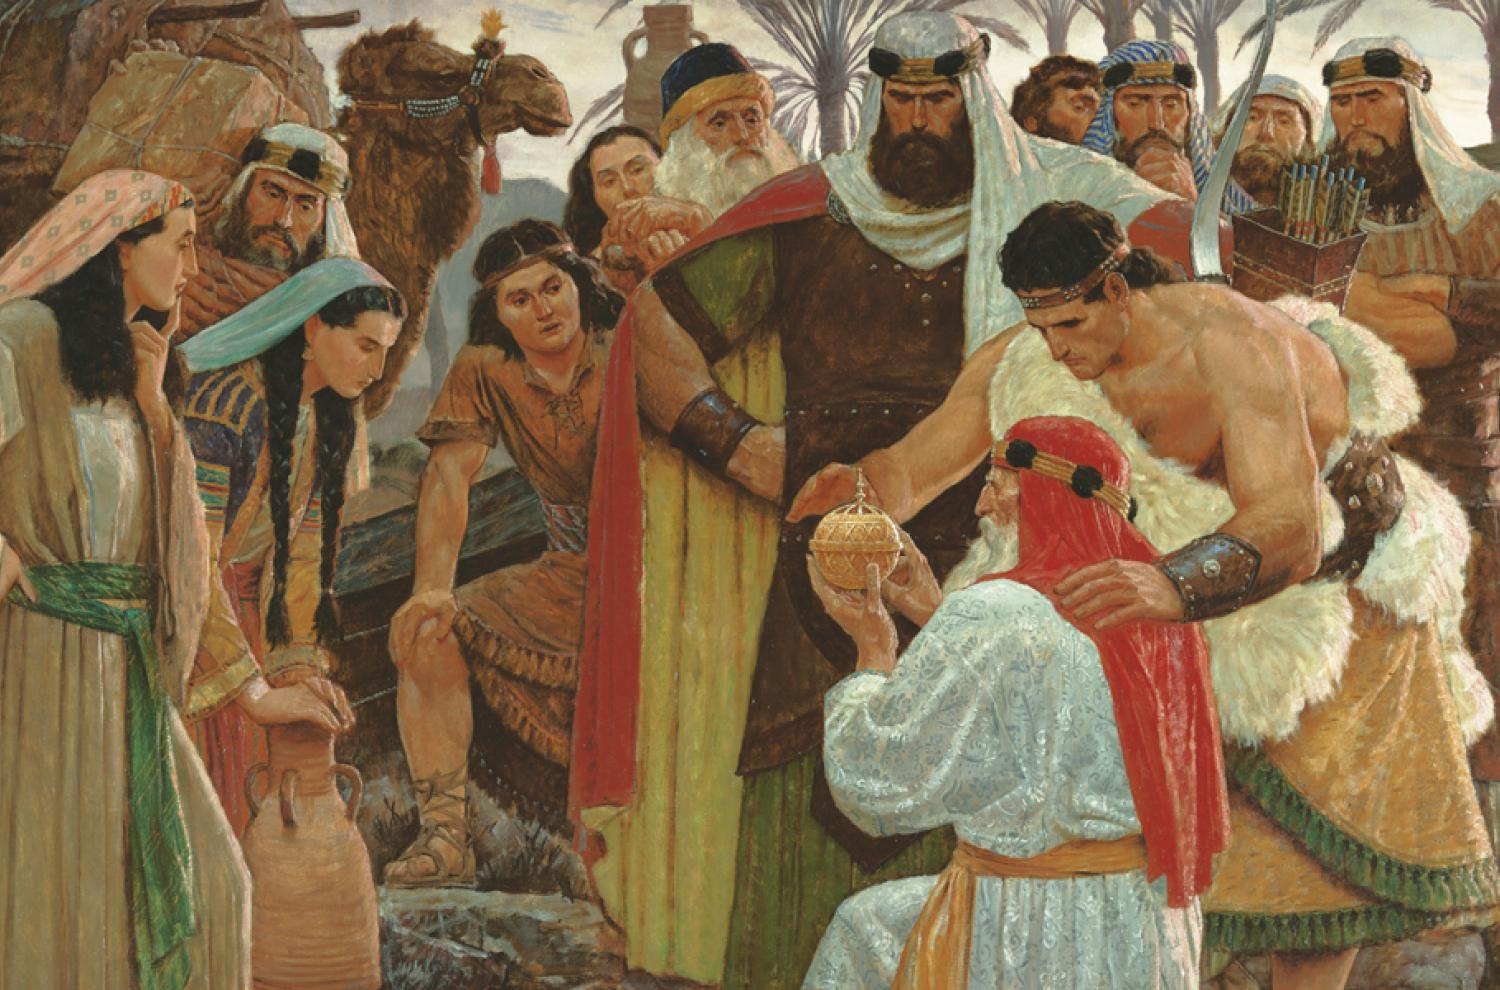 The Liahona by Arnold Friberg via lds.org